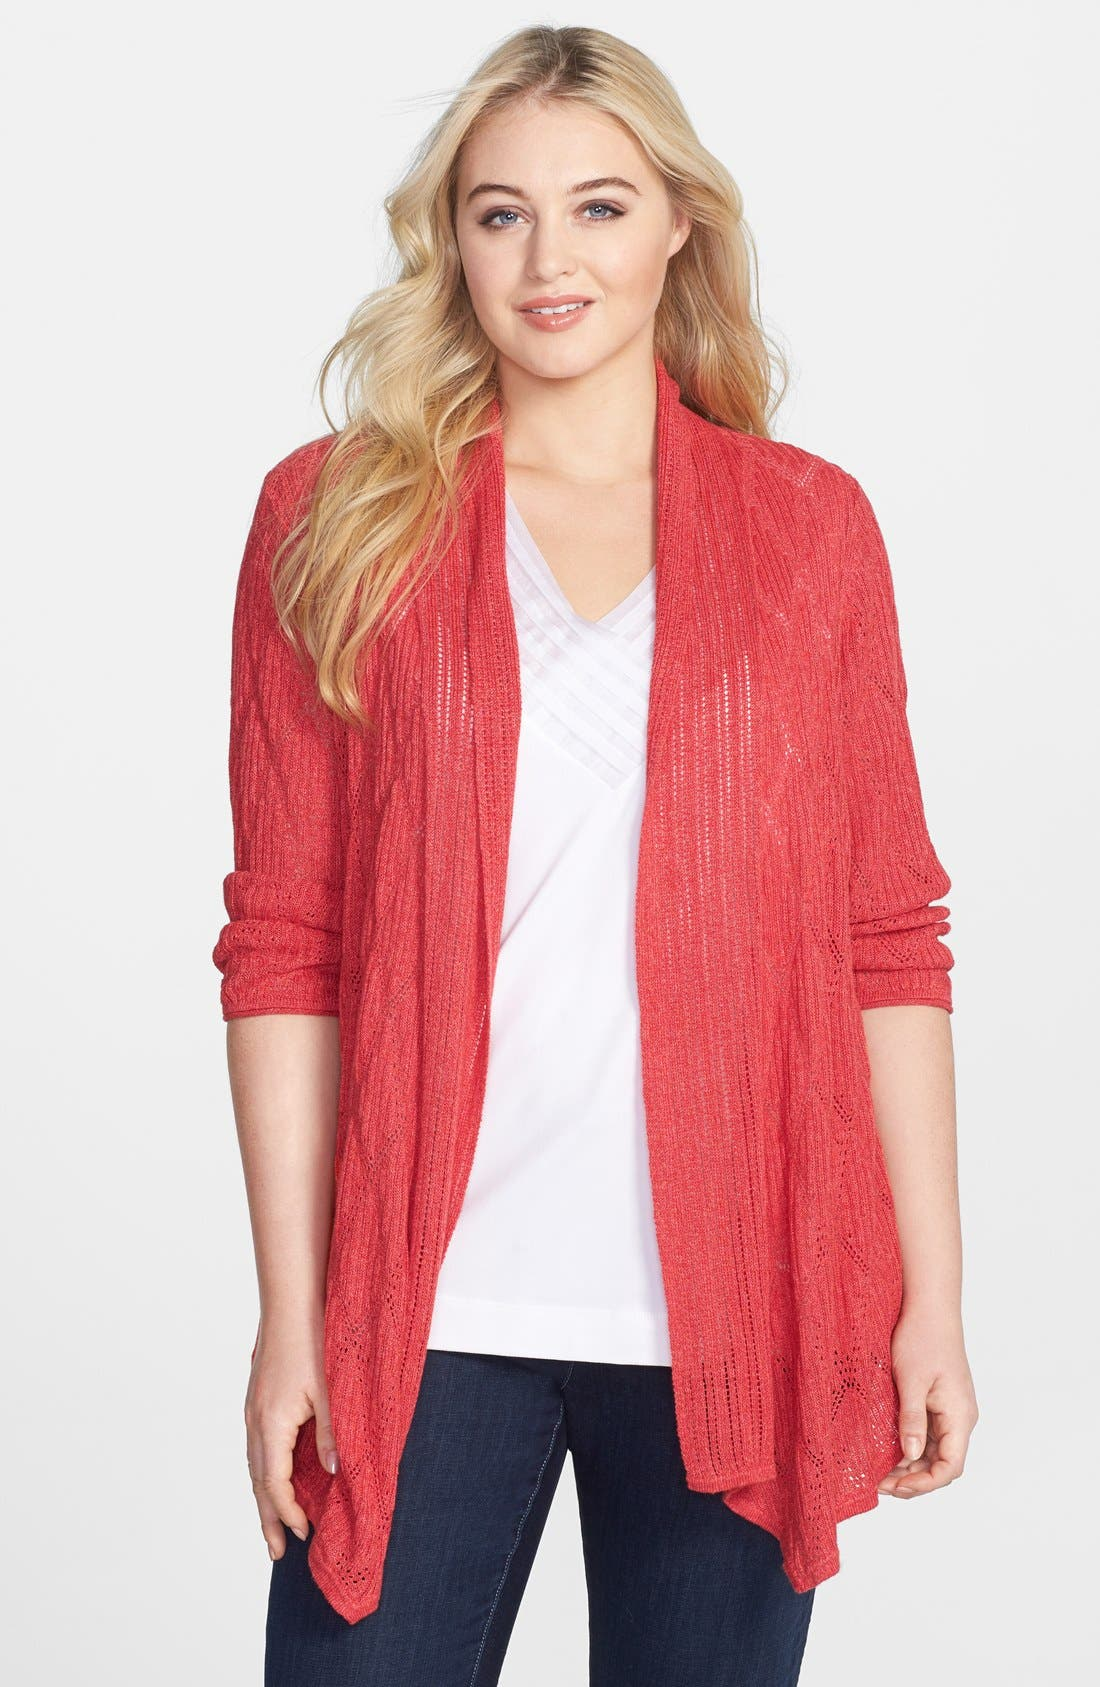 Main Image - NIC+ZOE 'Cascading Diamonds' Cardigan (Plus Size)